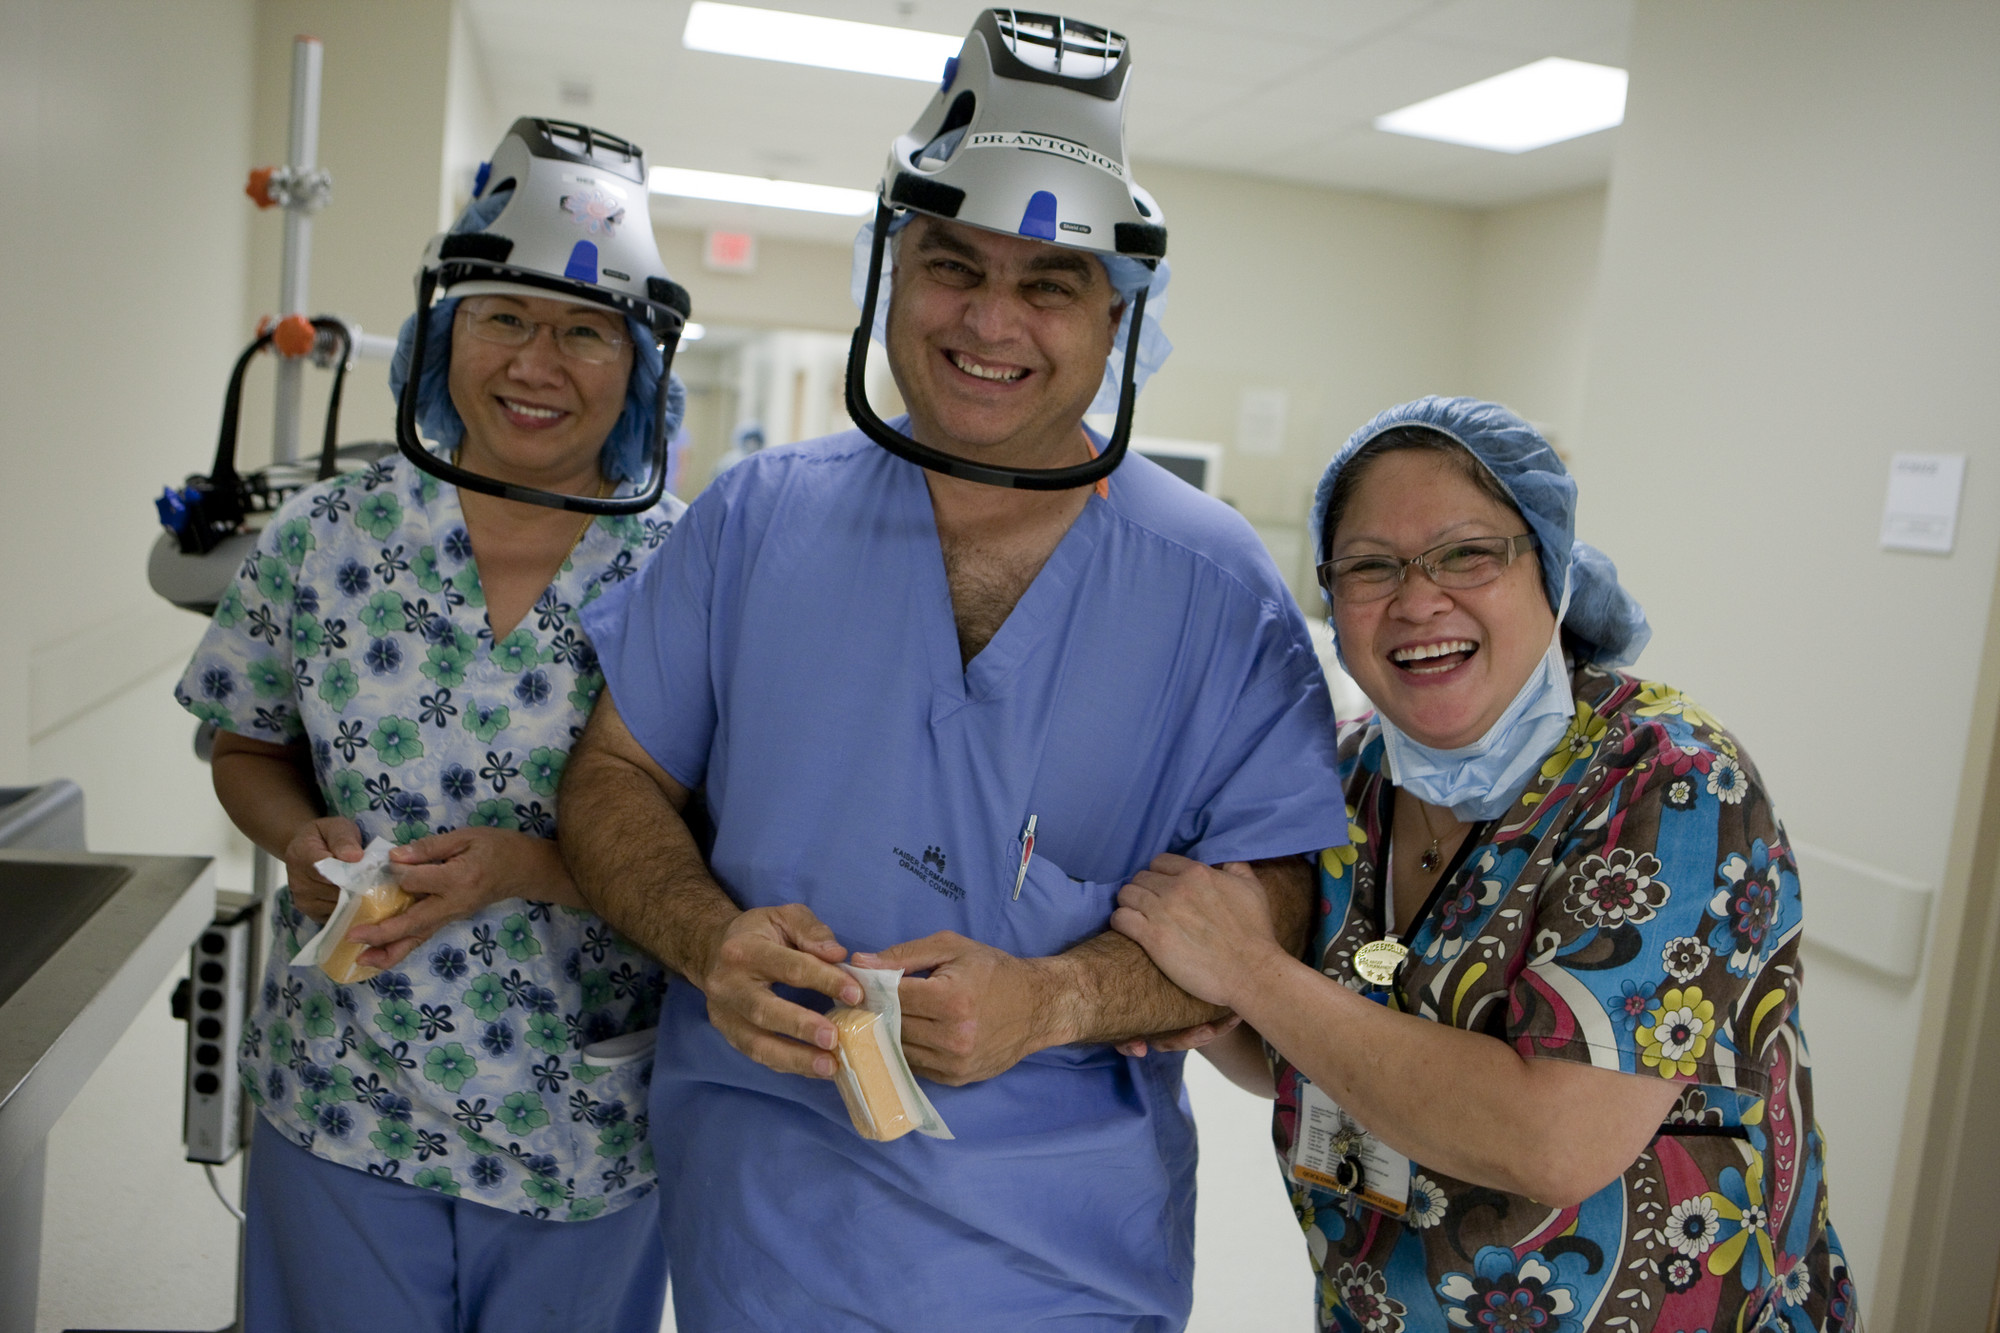 Three smiling health care workers, wearing interesting hats